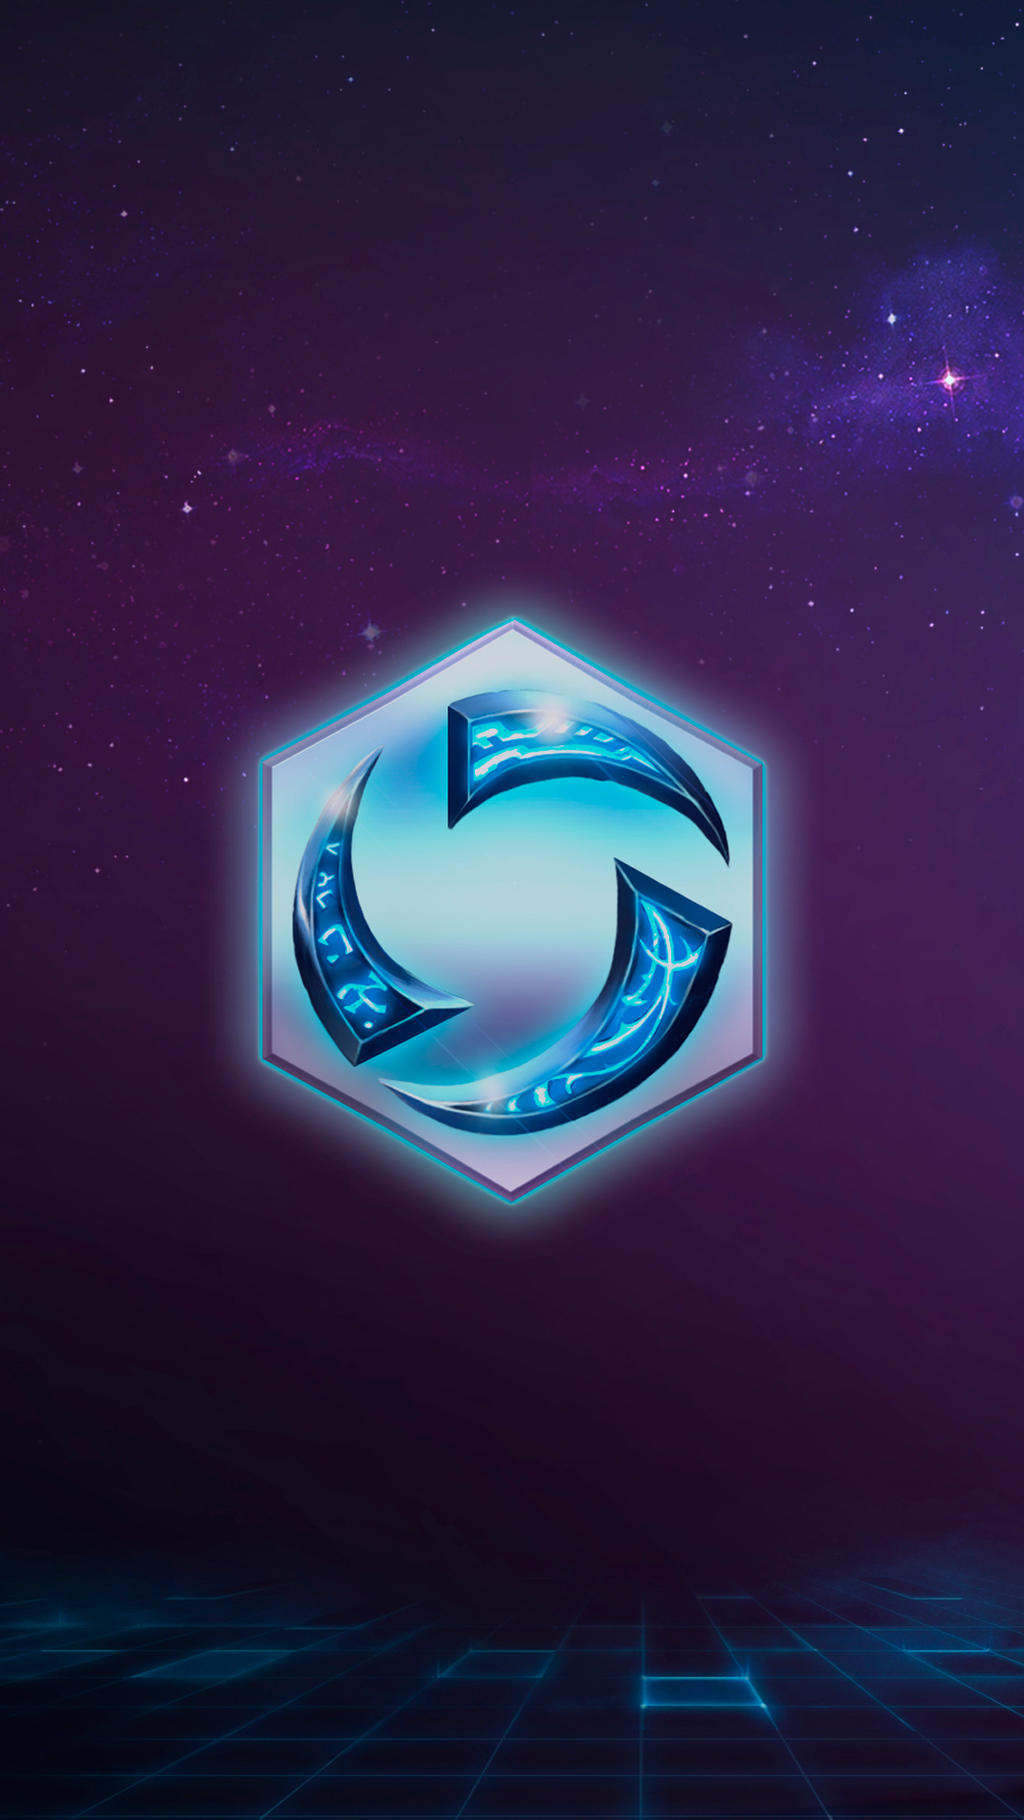 Heroes of the storm iphone wallpaper by bigbadbeasty on - Heroes of the storm phone wallpaper ...